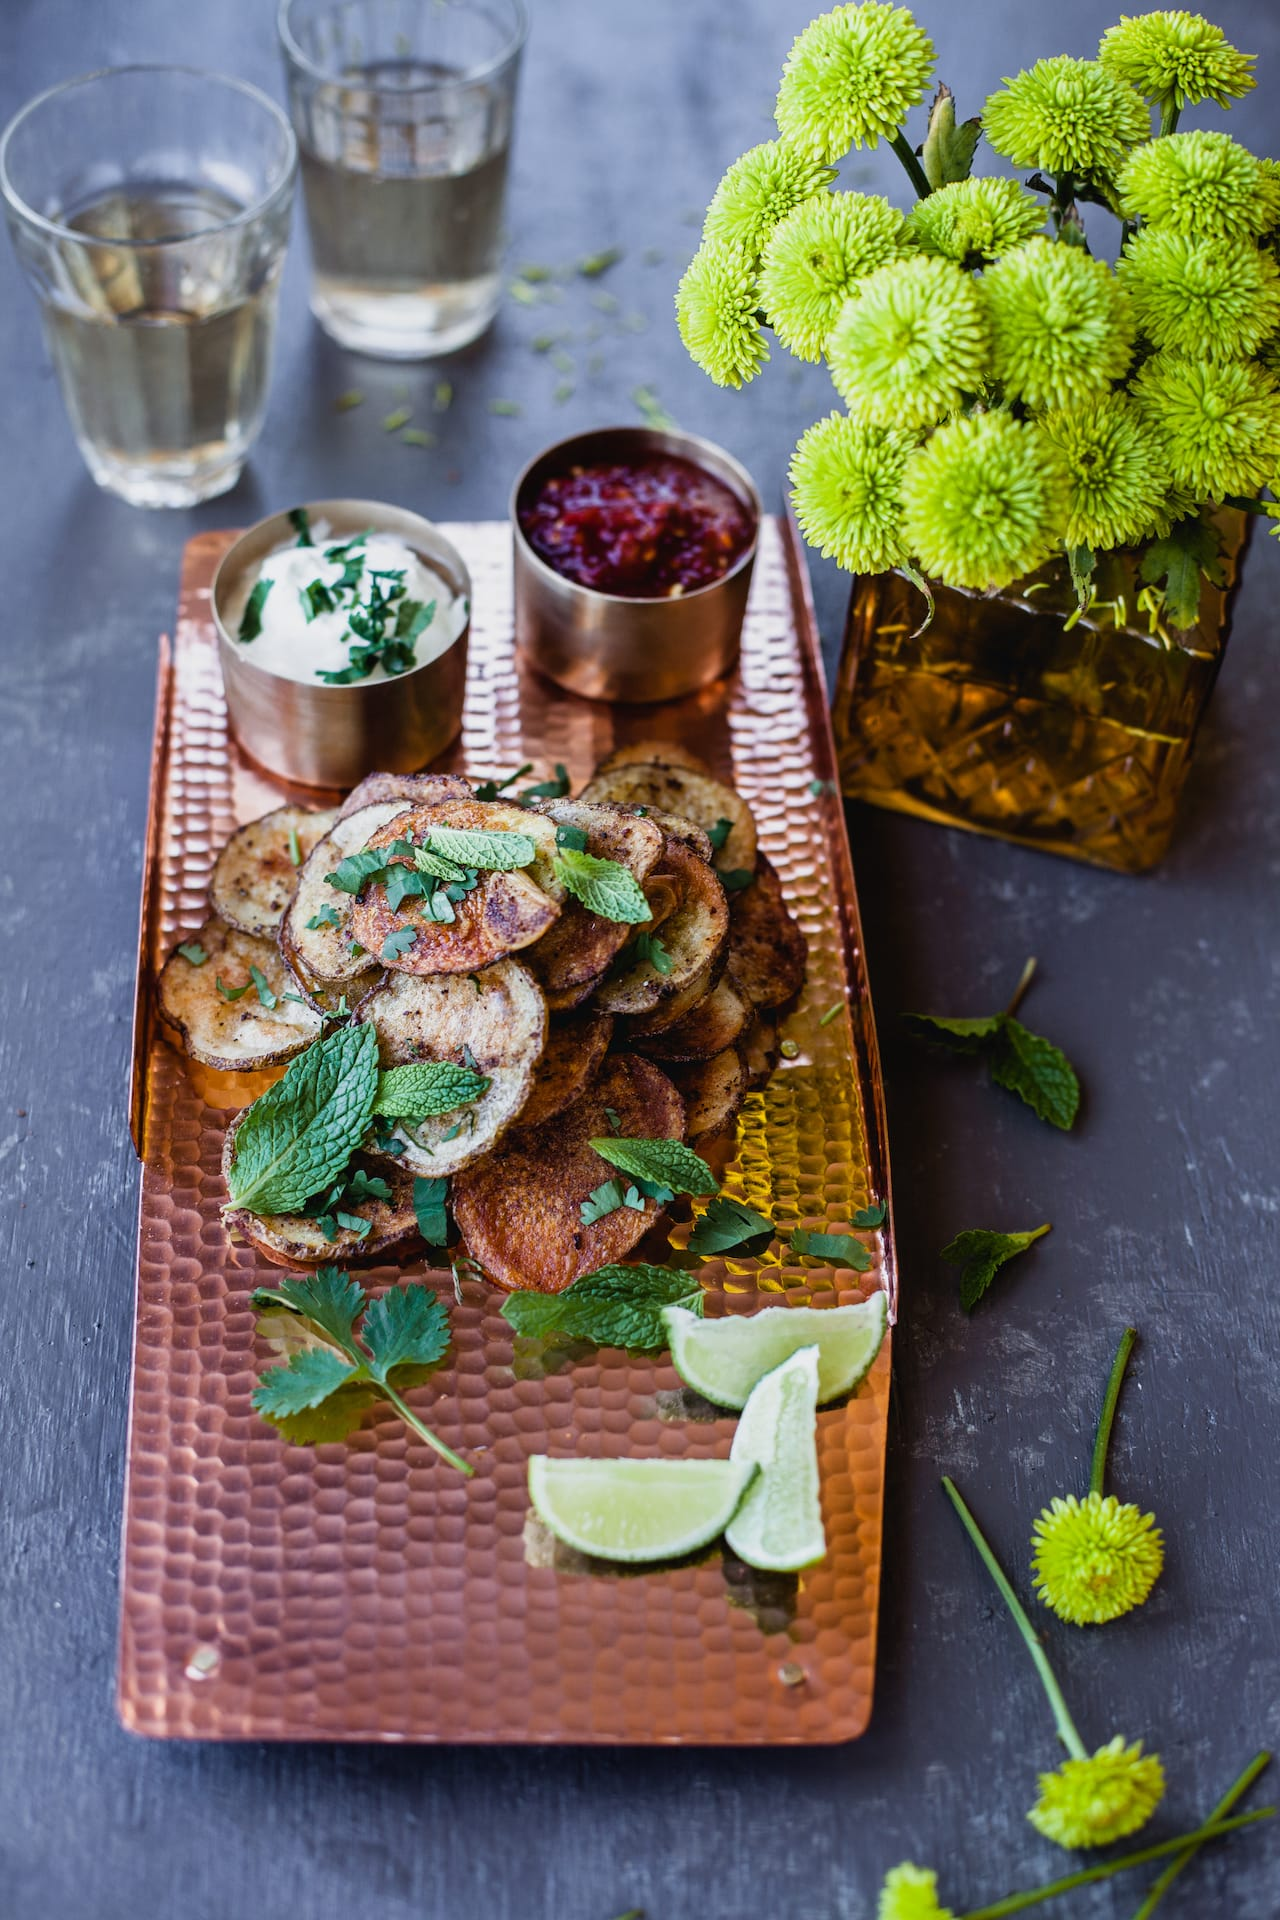 Garam Masala Baked Potato Chips | Playful Cooking #chips #baked #potato #garammasala #indian #spiced